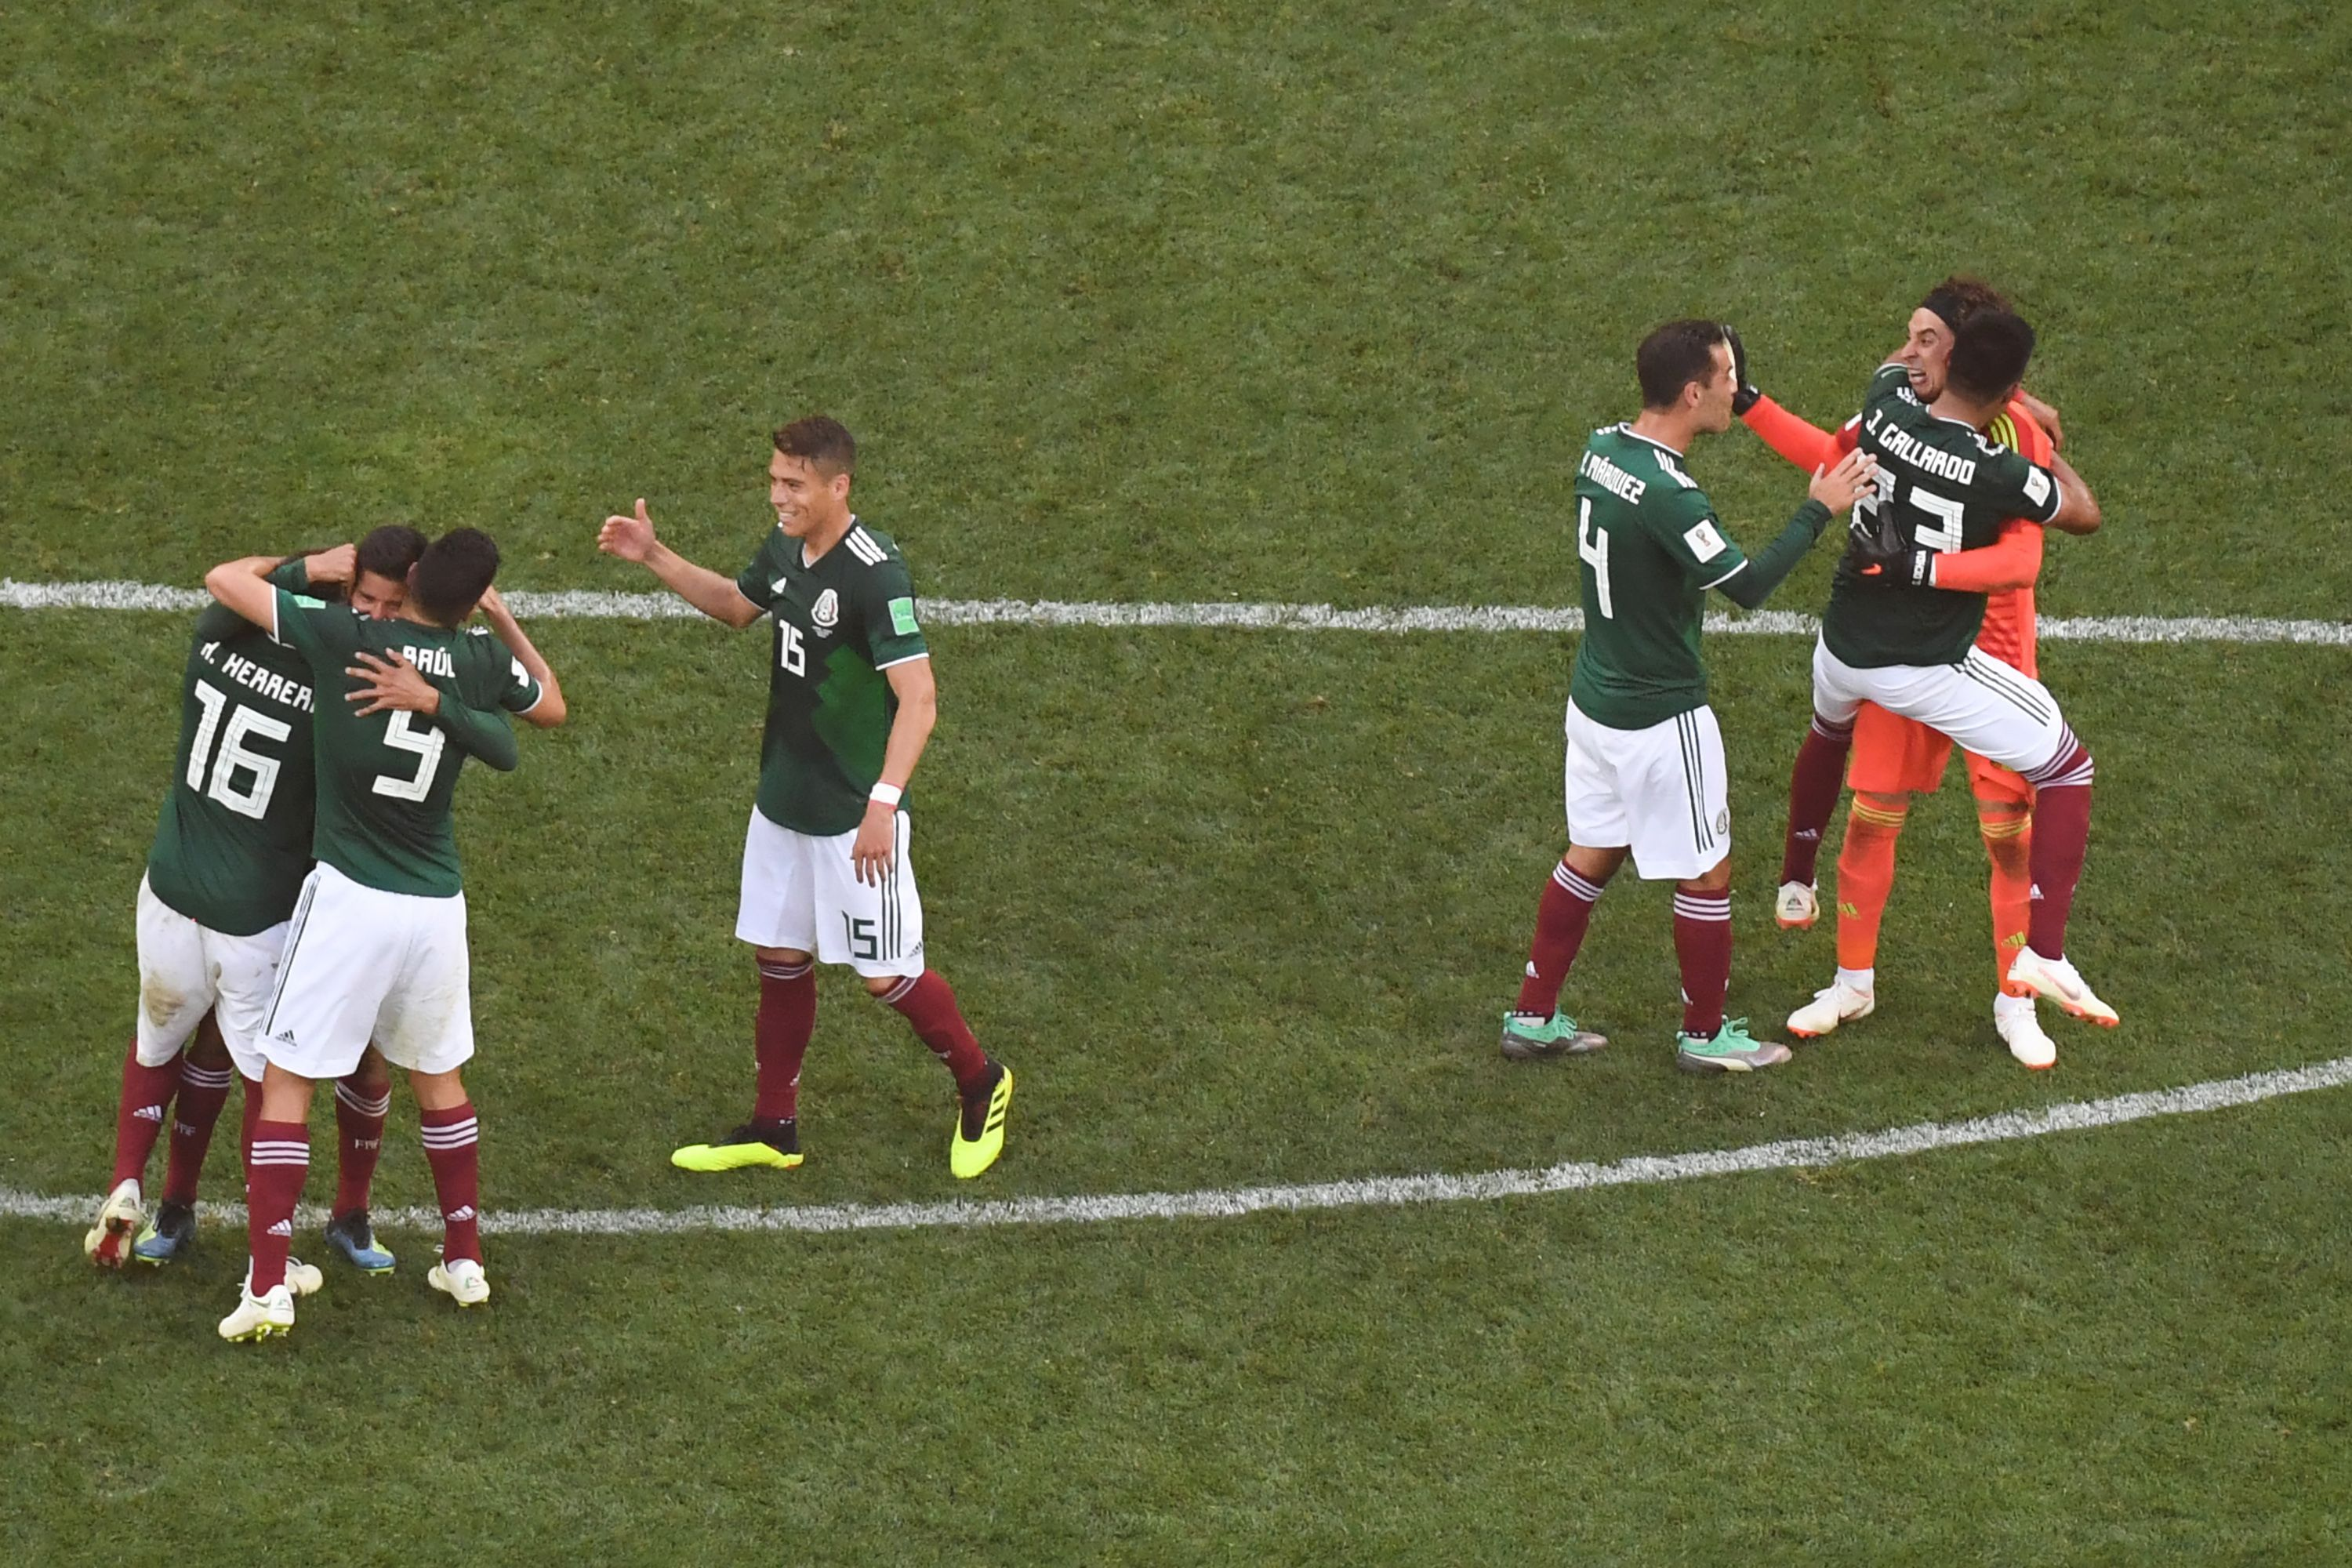 Mexico's players celebrate their historic victory with star goalkeeper Guillermo Ochoa.